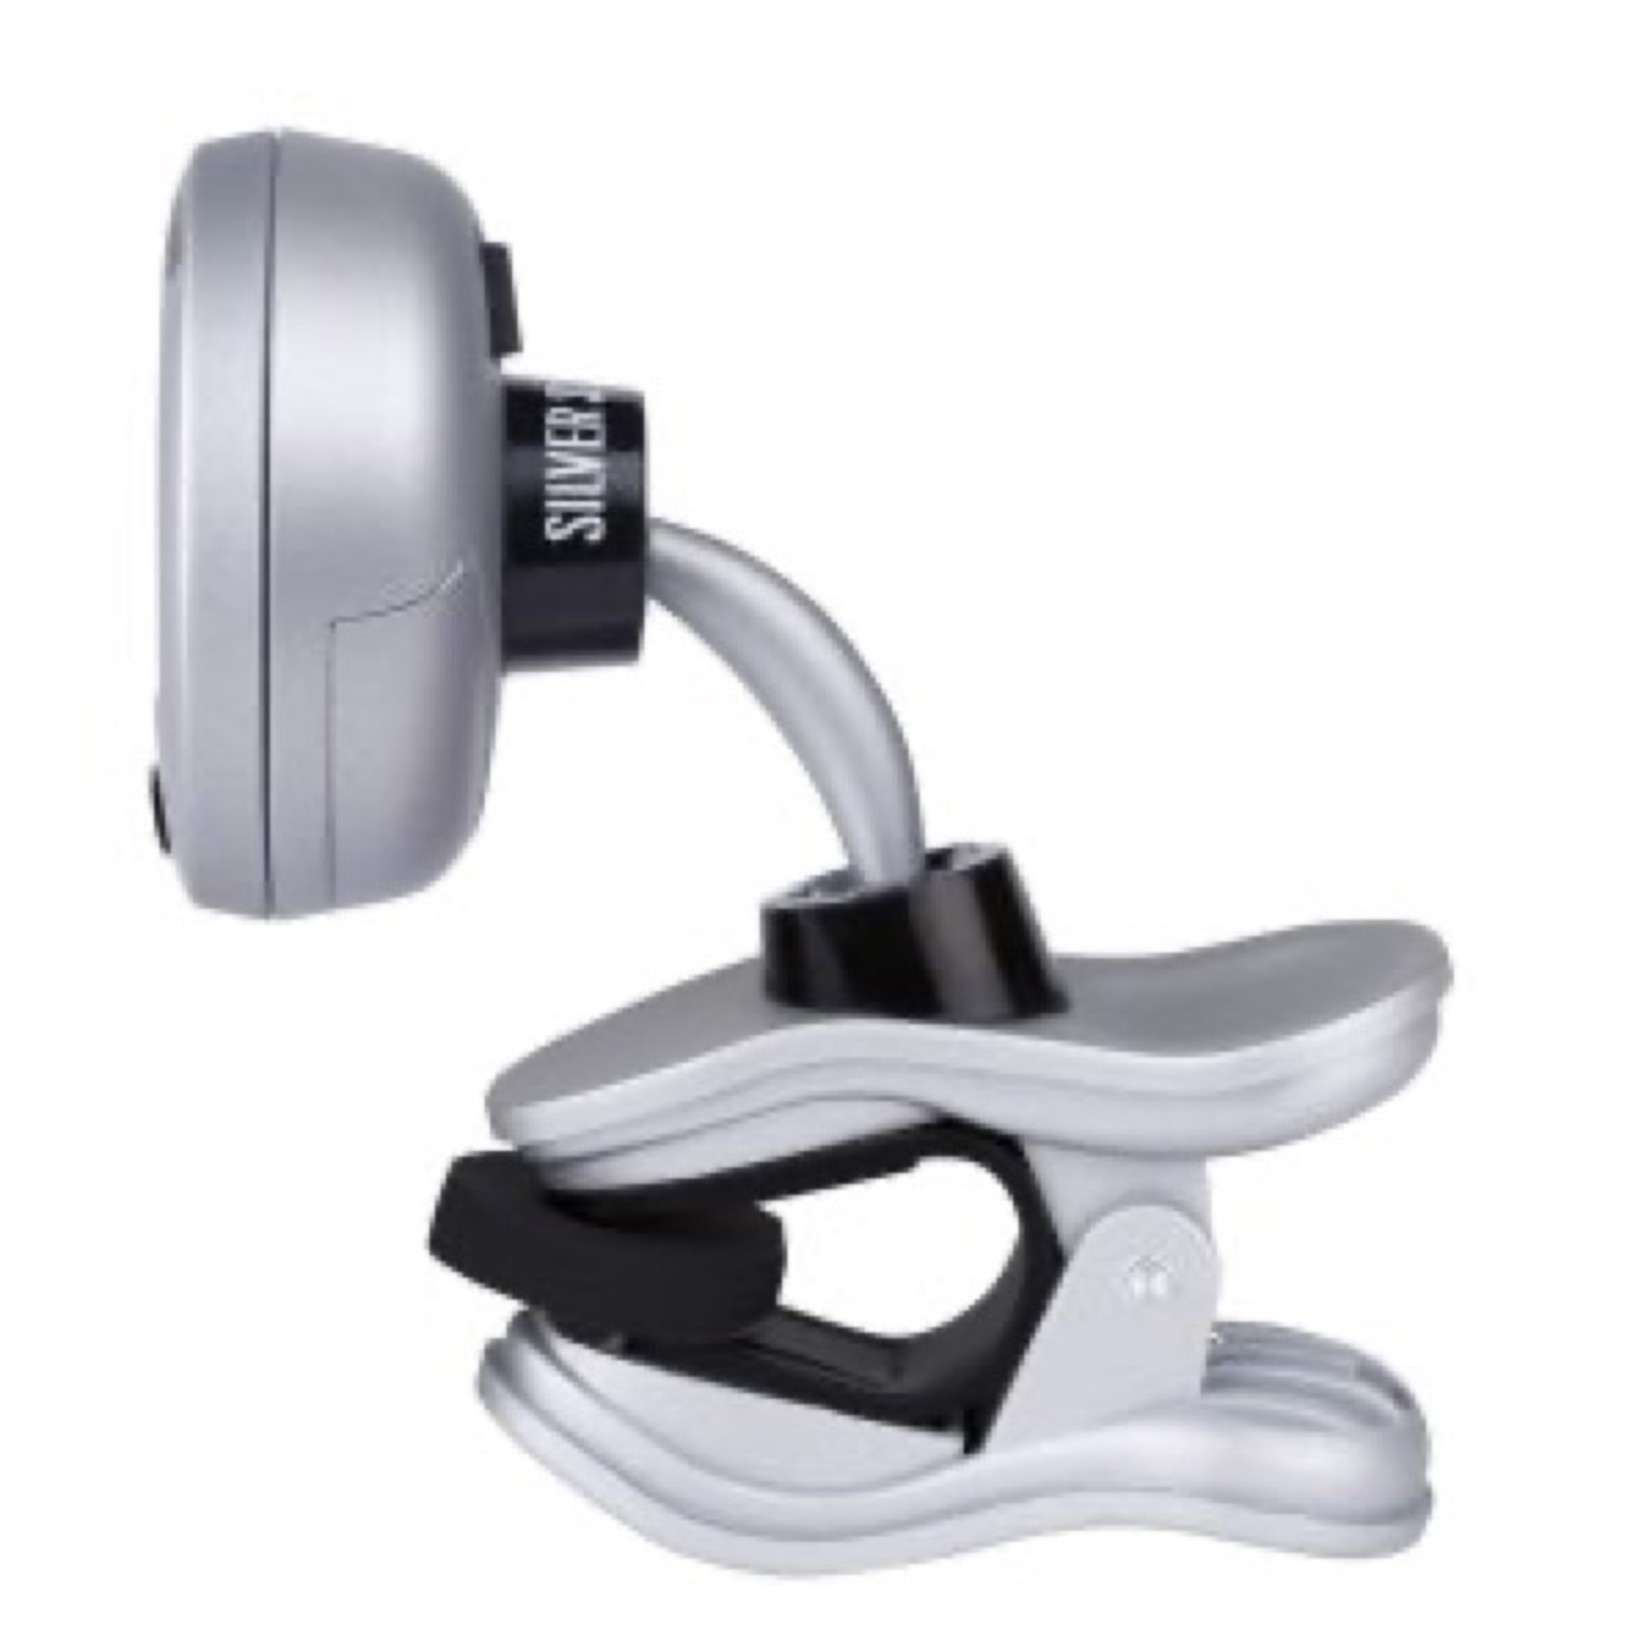 Snark Silver Snark 2 - Chromatic Clip Tuner for All Instruments - NEW Finish and 2.0 Software for 2021, In-Stock Now